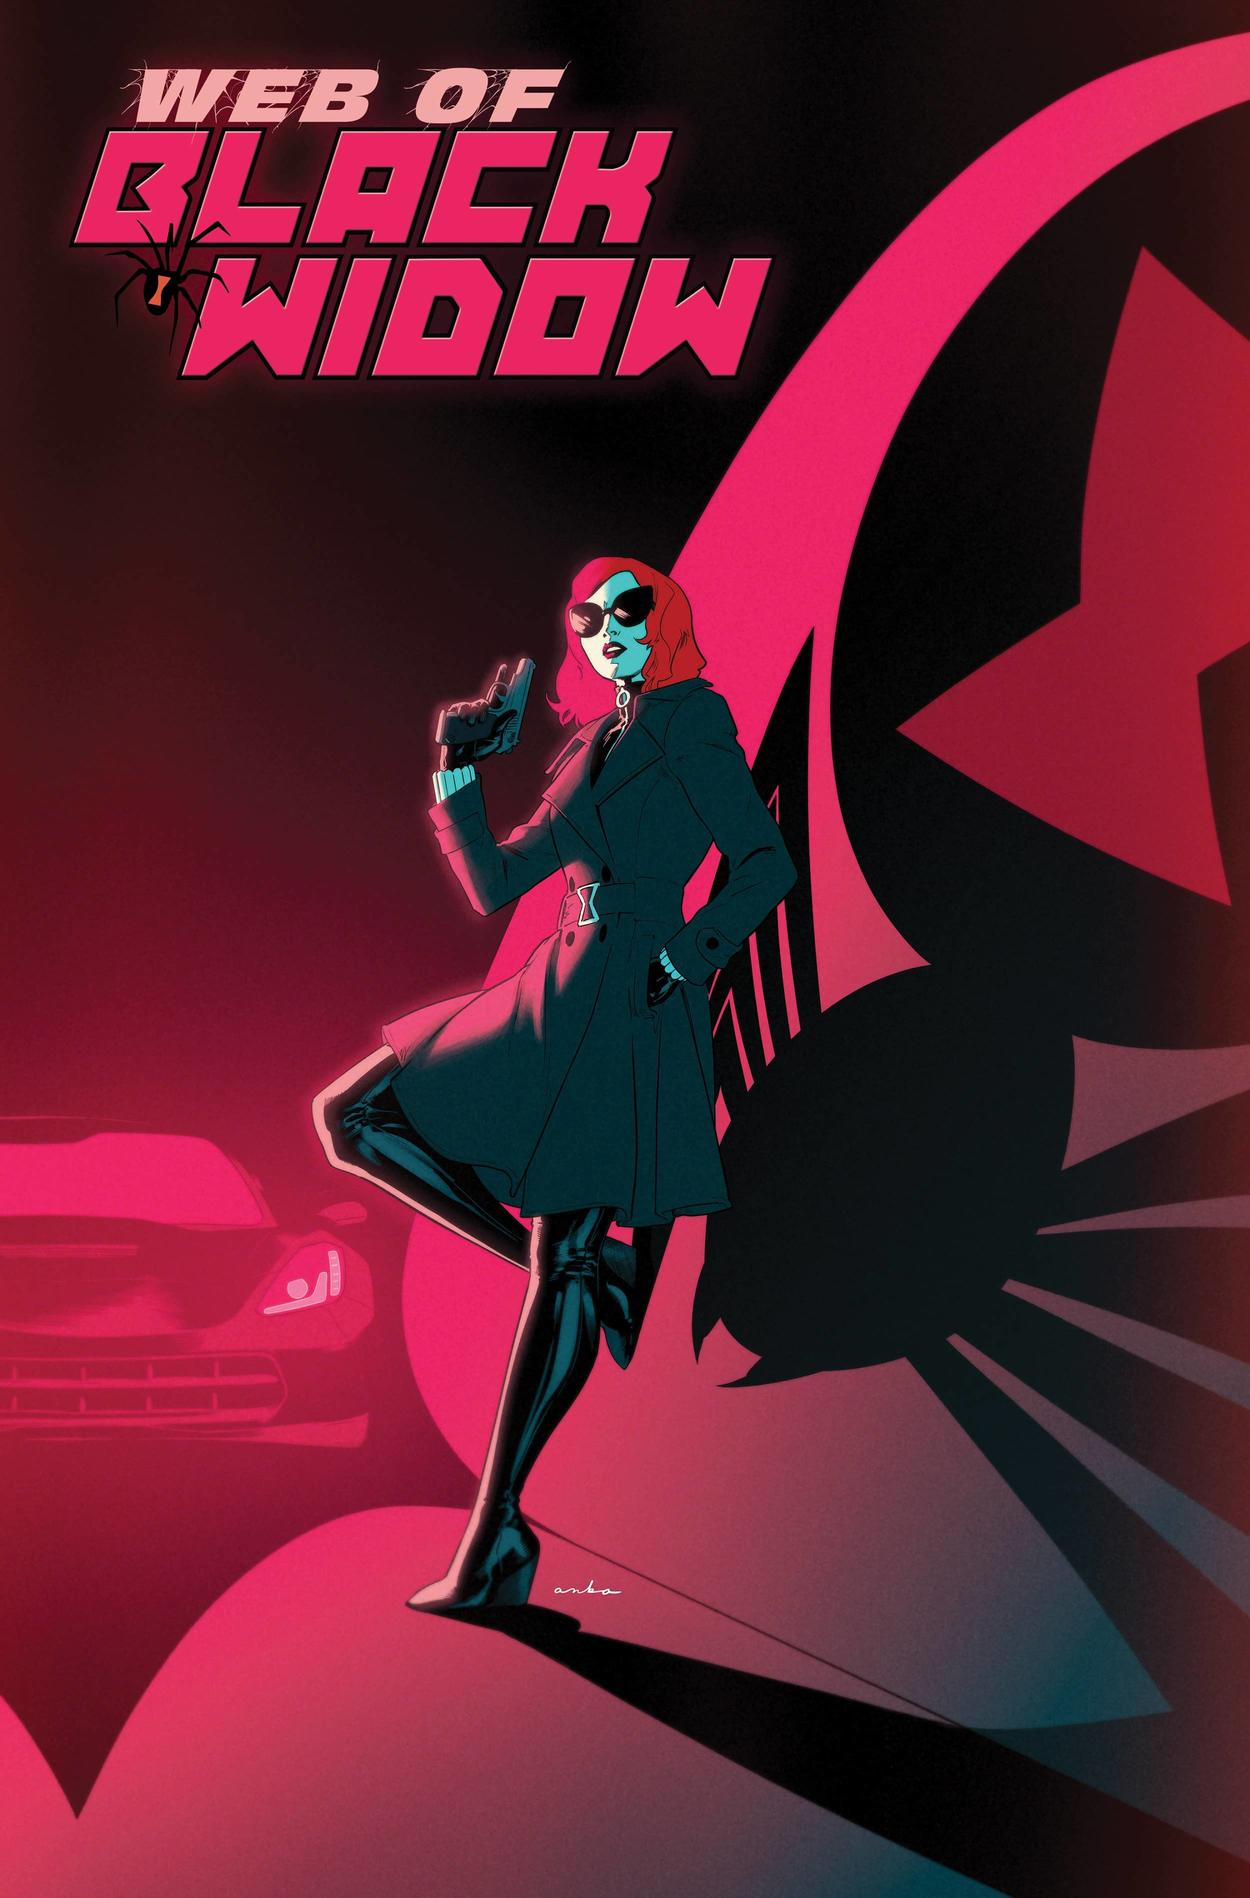 WEB OF BLACK WIDOW #1 variant cover by Kris Anka